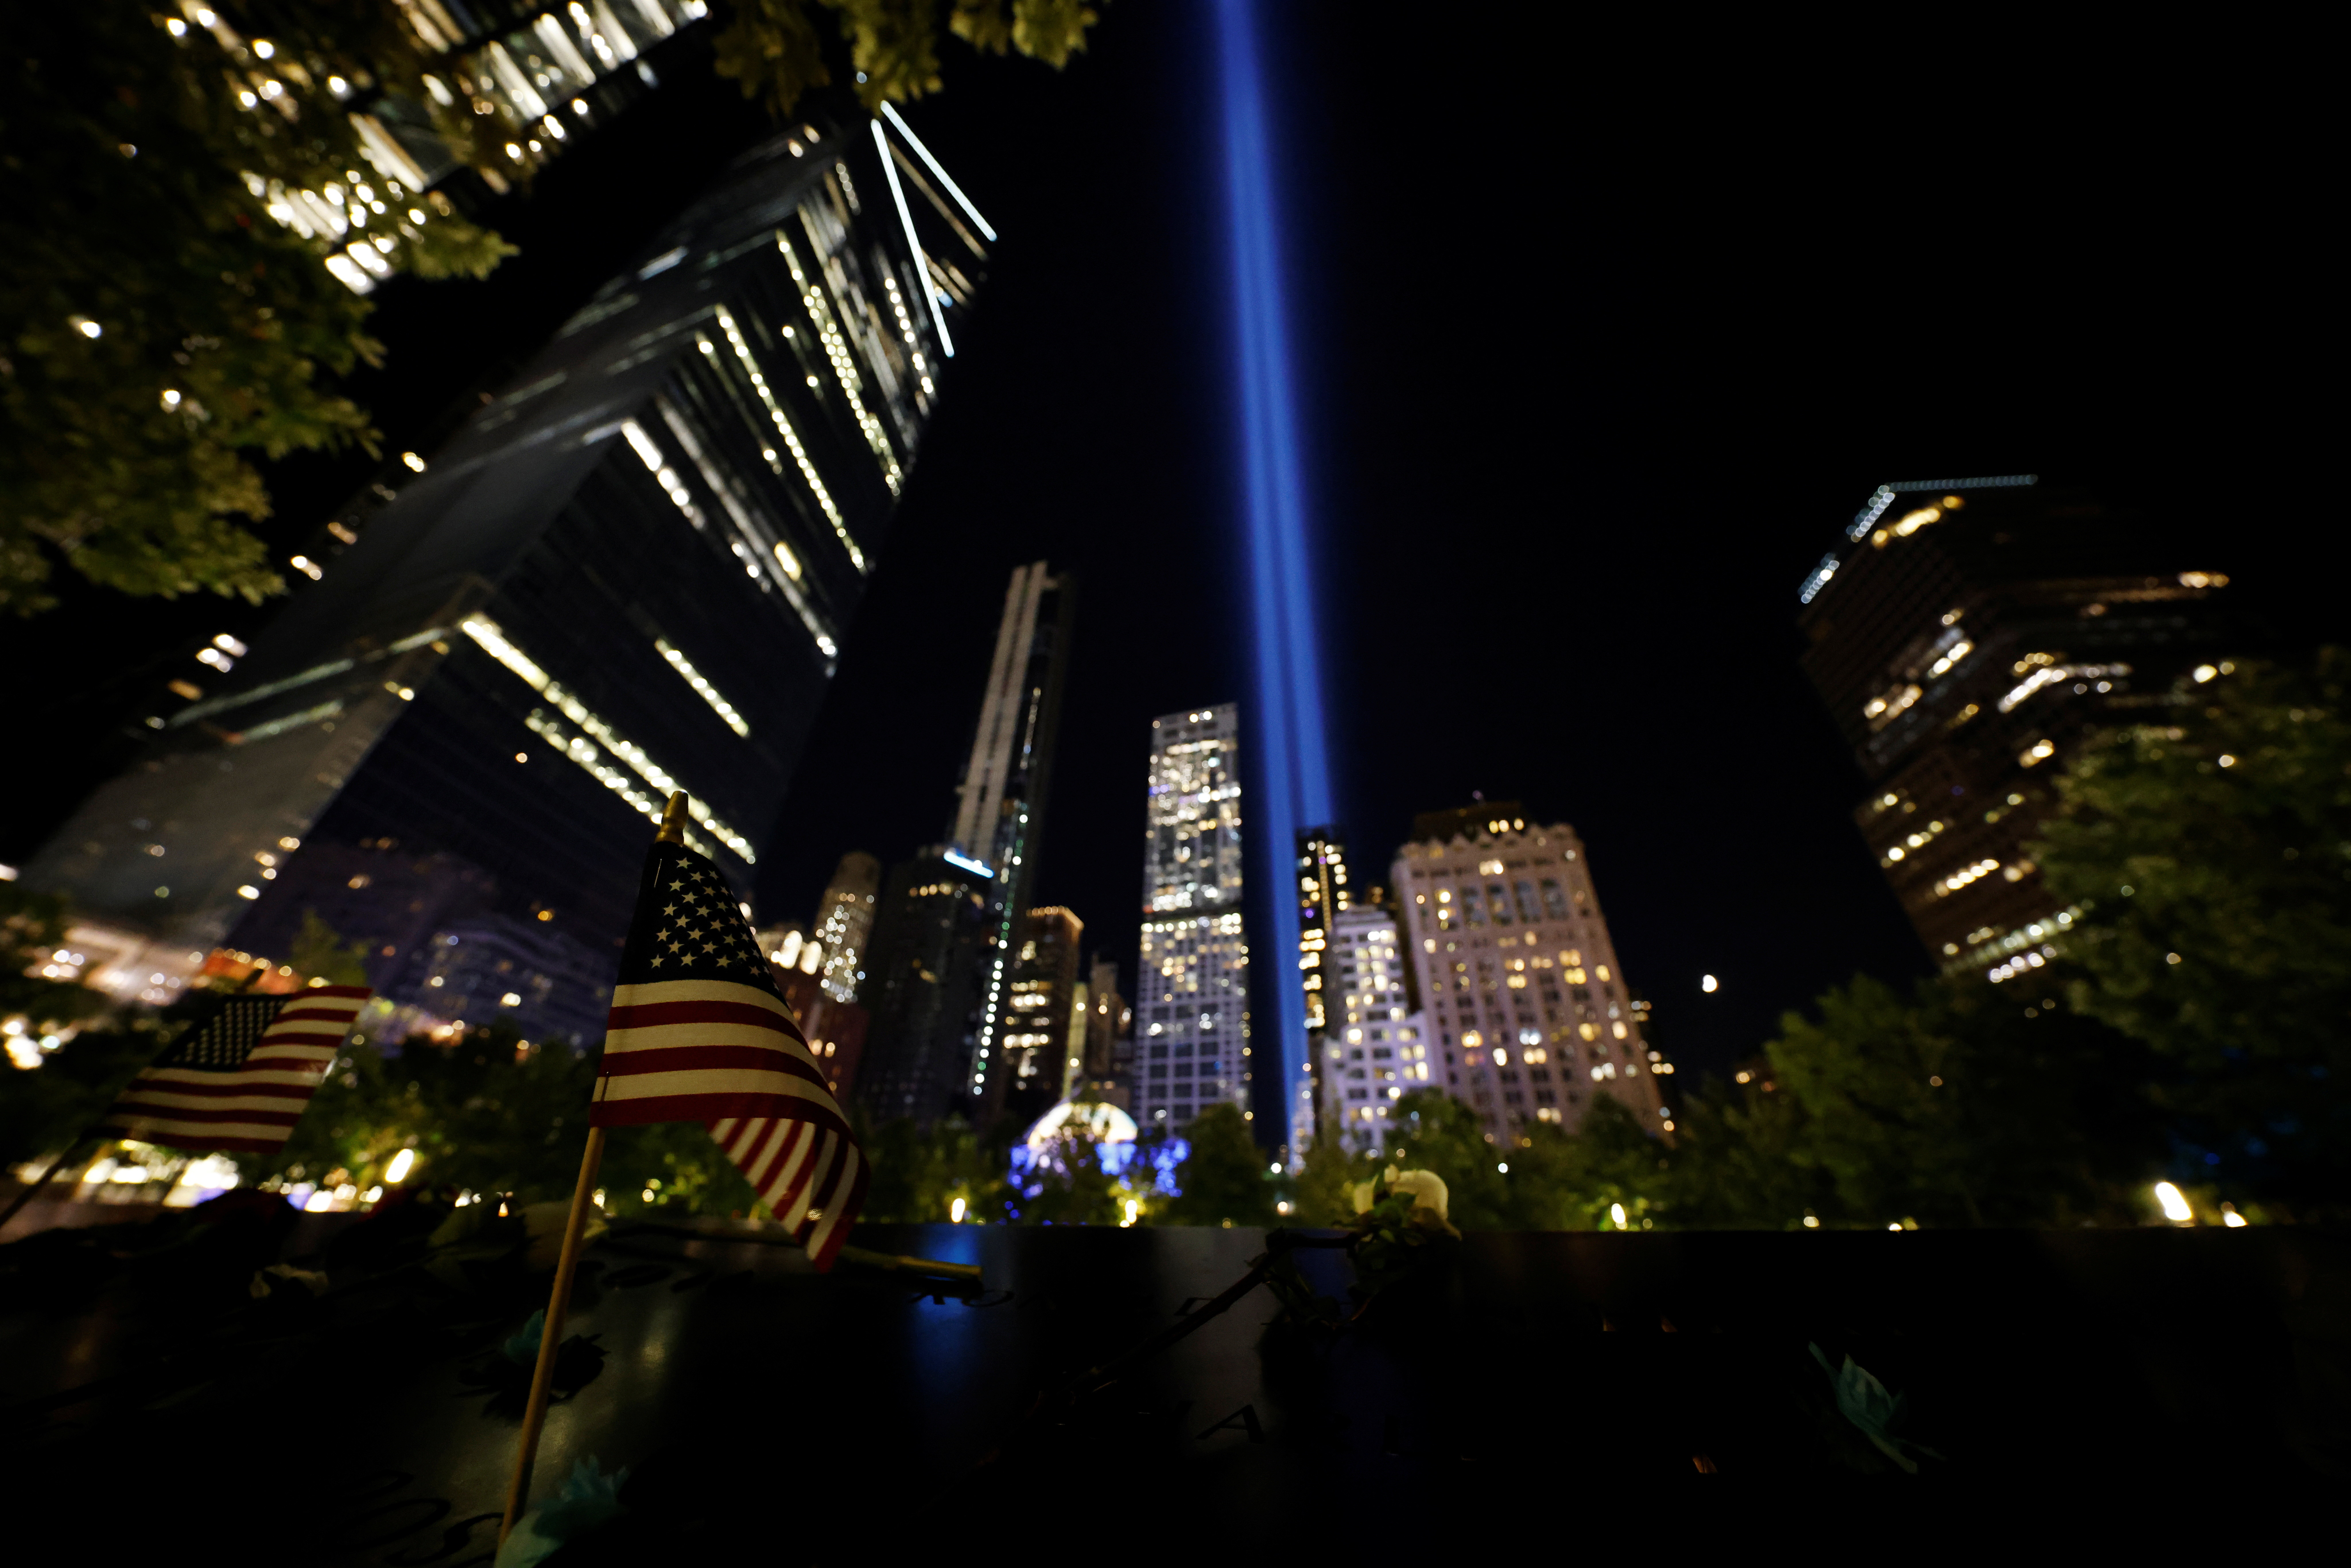 The Tribute in Light art installation is seen from the National September 11 Memorial on the day marking the 20th anniversary of the September 11, 2001 attacks in New York City